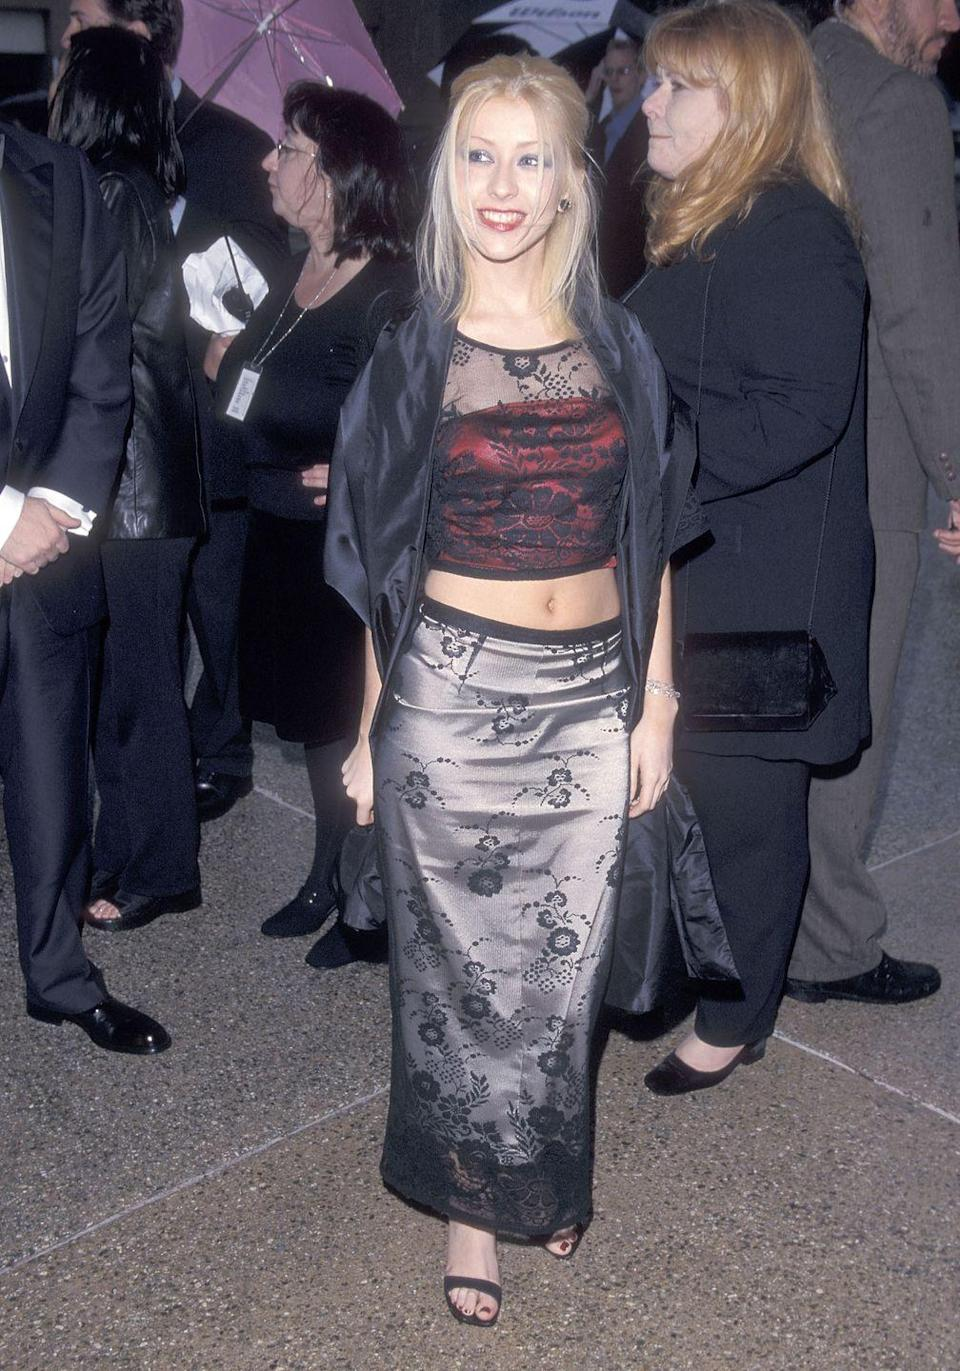 <p>No one can say X-tina didn't keep things interesting in the '90s. At the ALMA Awards, she showed up in this lacy crop top and maxi skirt combo, and you know what? It's one of her more tame looks.</p>